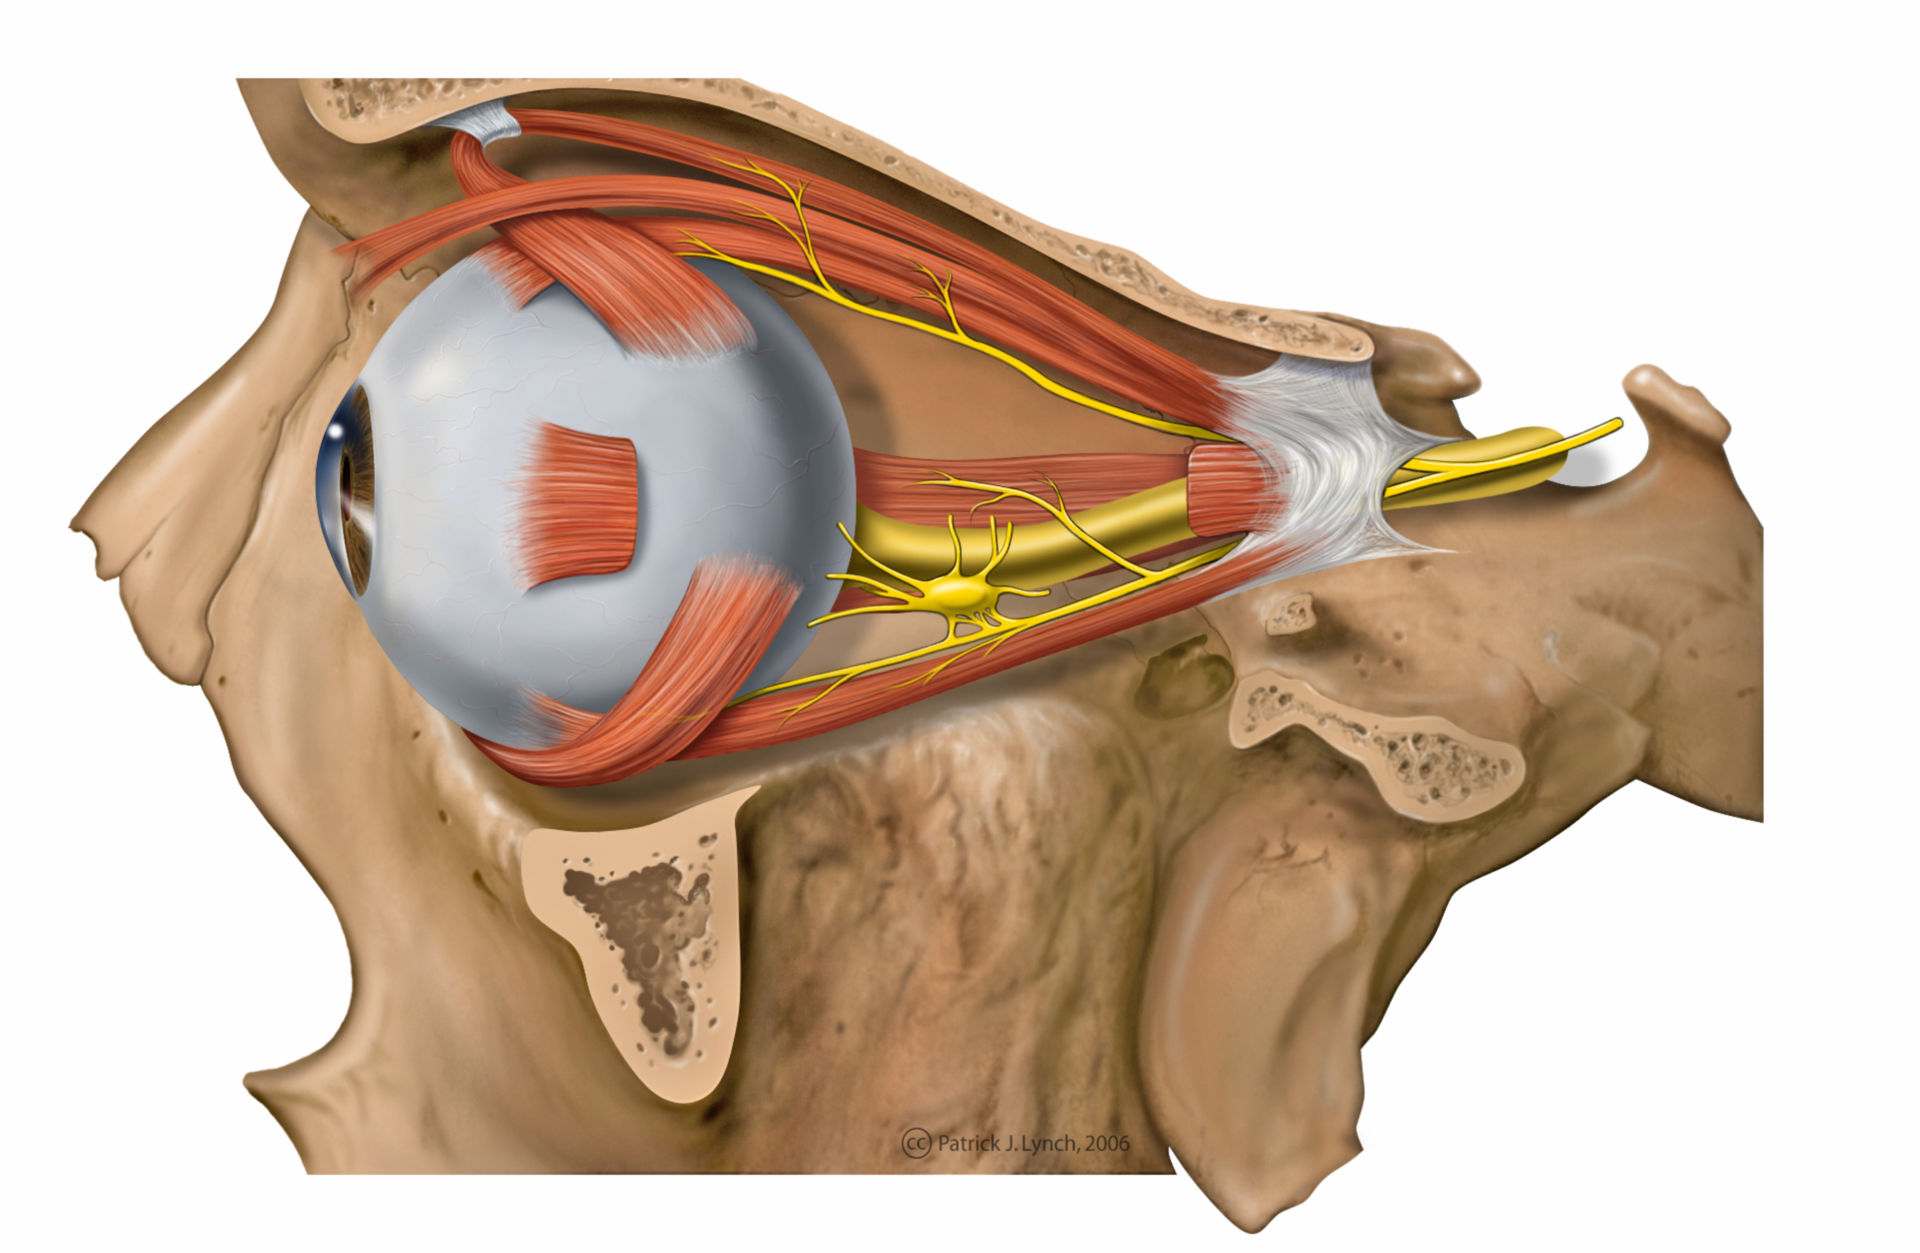 Anatomy of the eye with muscles and nerves (illustration)